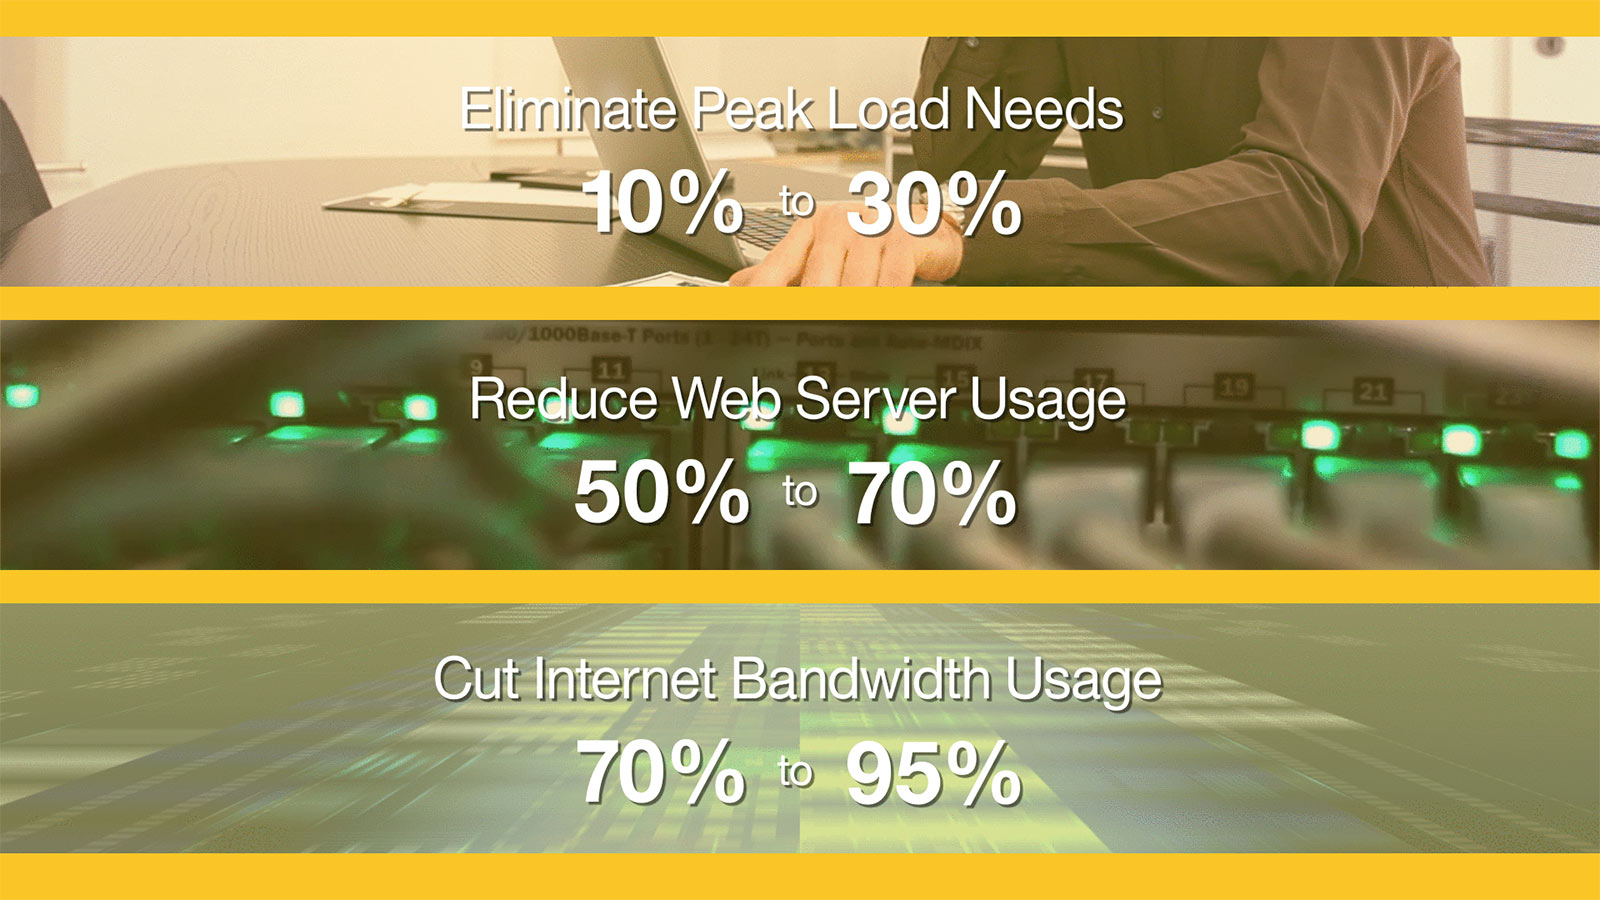 Eliminate peak load needs, reduce web server usage and cut bandwidth.